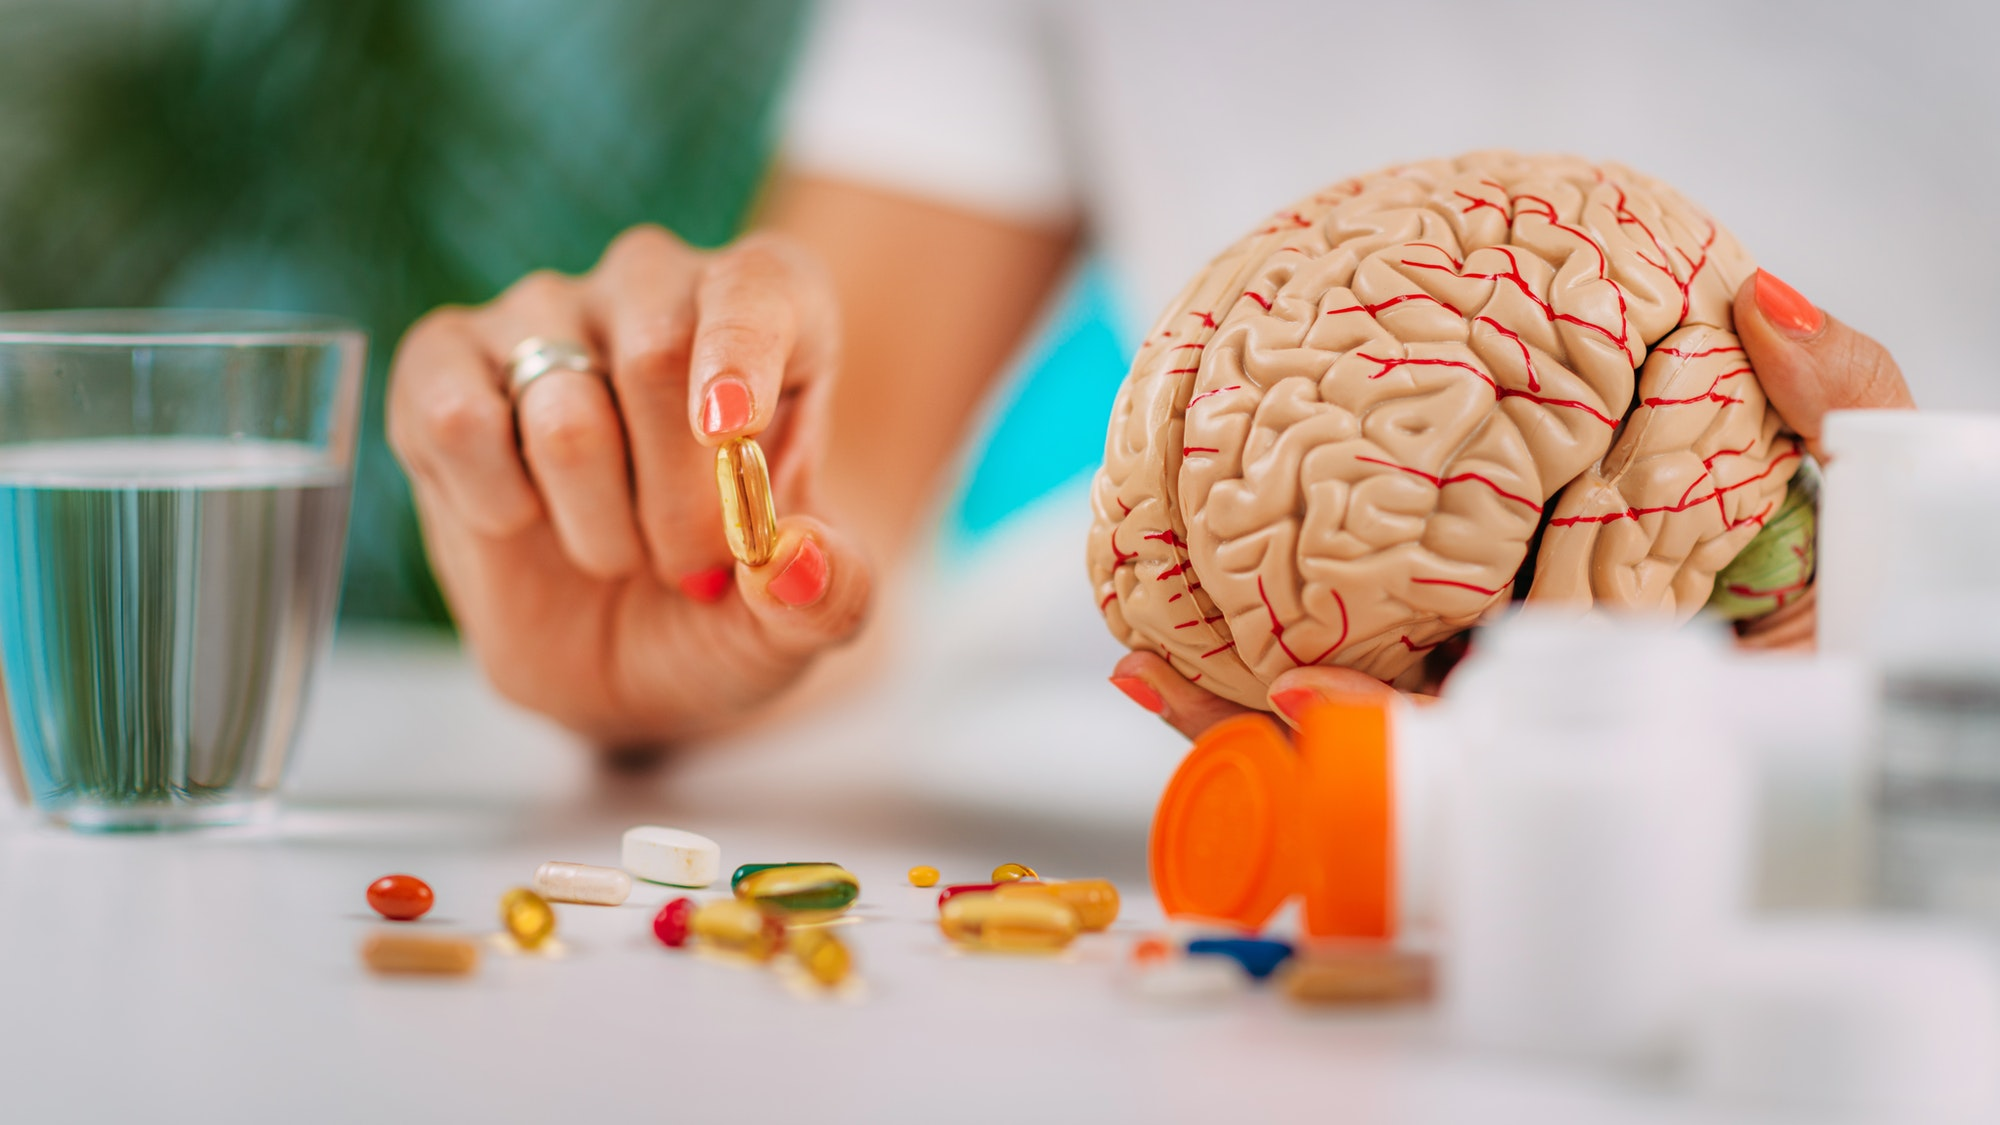 Cognitive improvement or brain supplements. Woman holding a supplement capsule and a model brain.